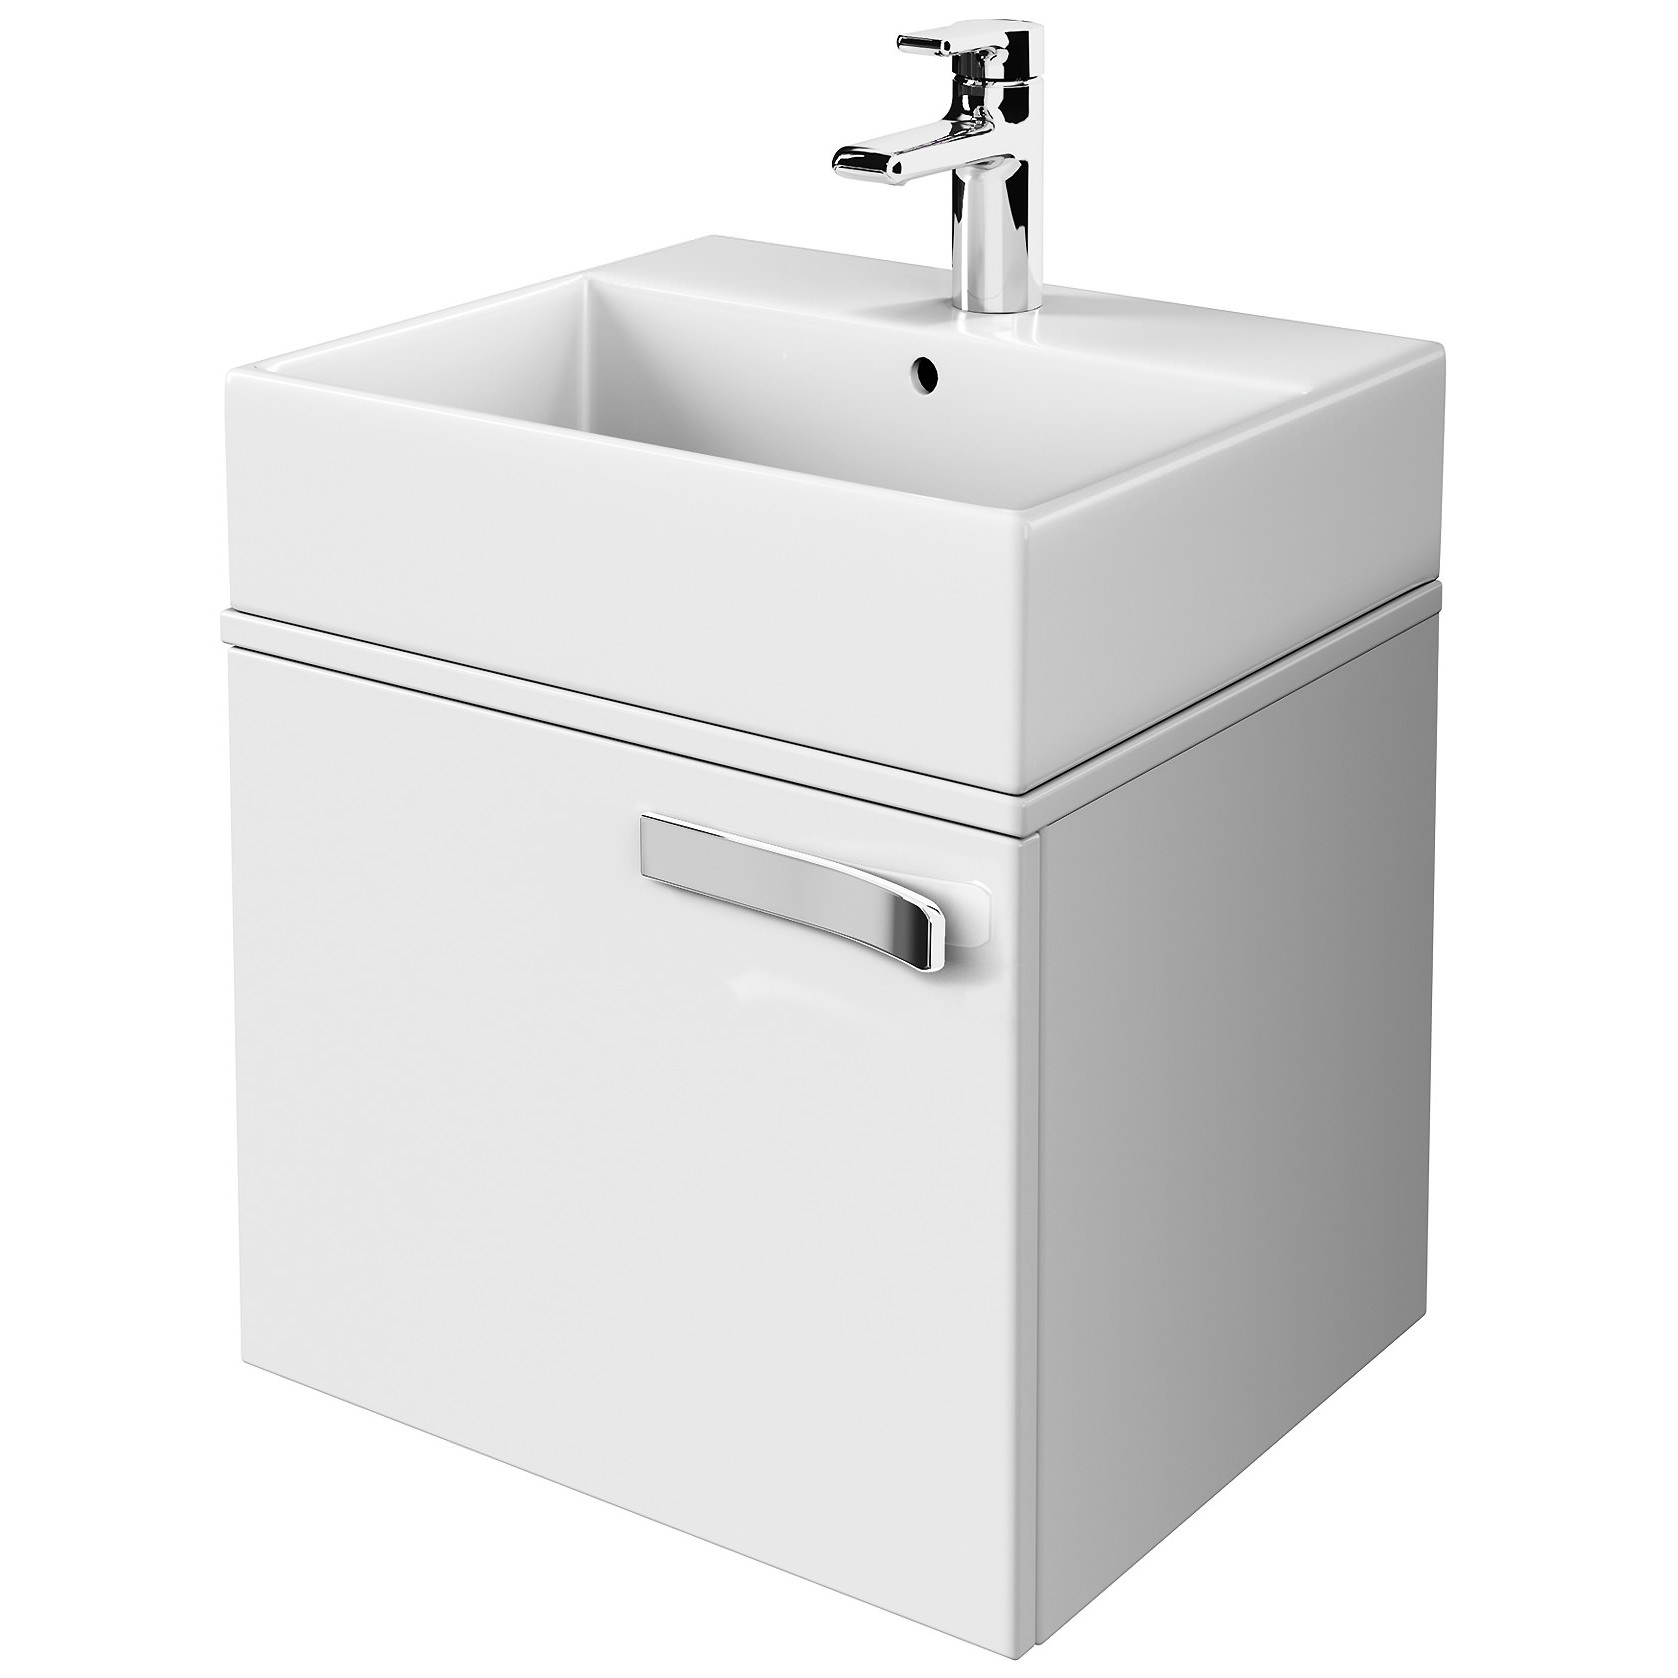 ideal standard strada gloss white 600mm basin unit with. Black Bedroom Furniture Sets. Home Design Ideas